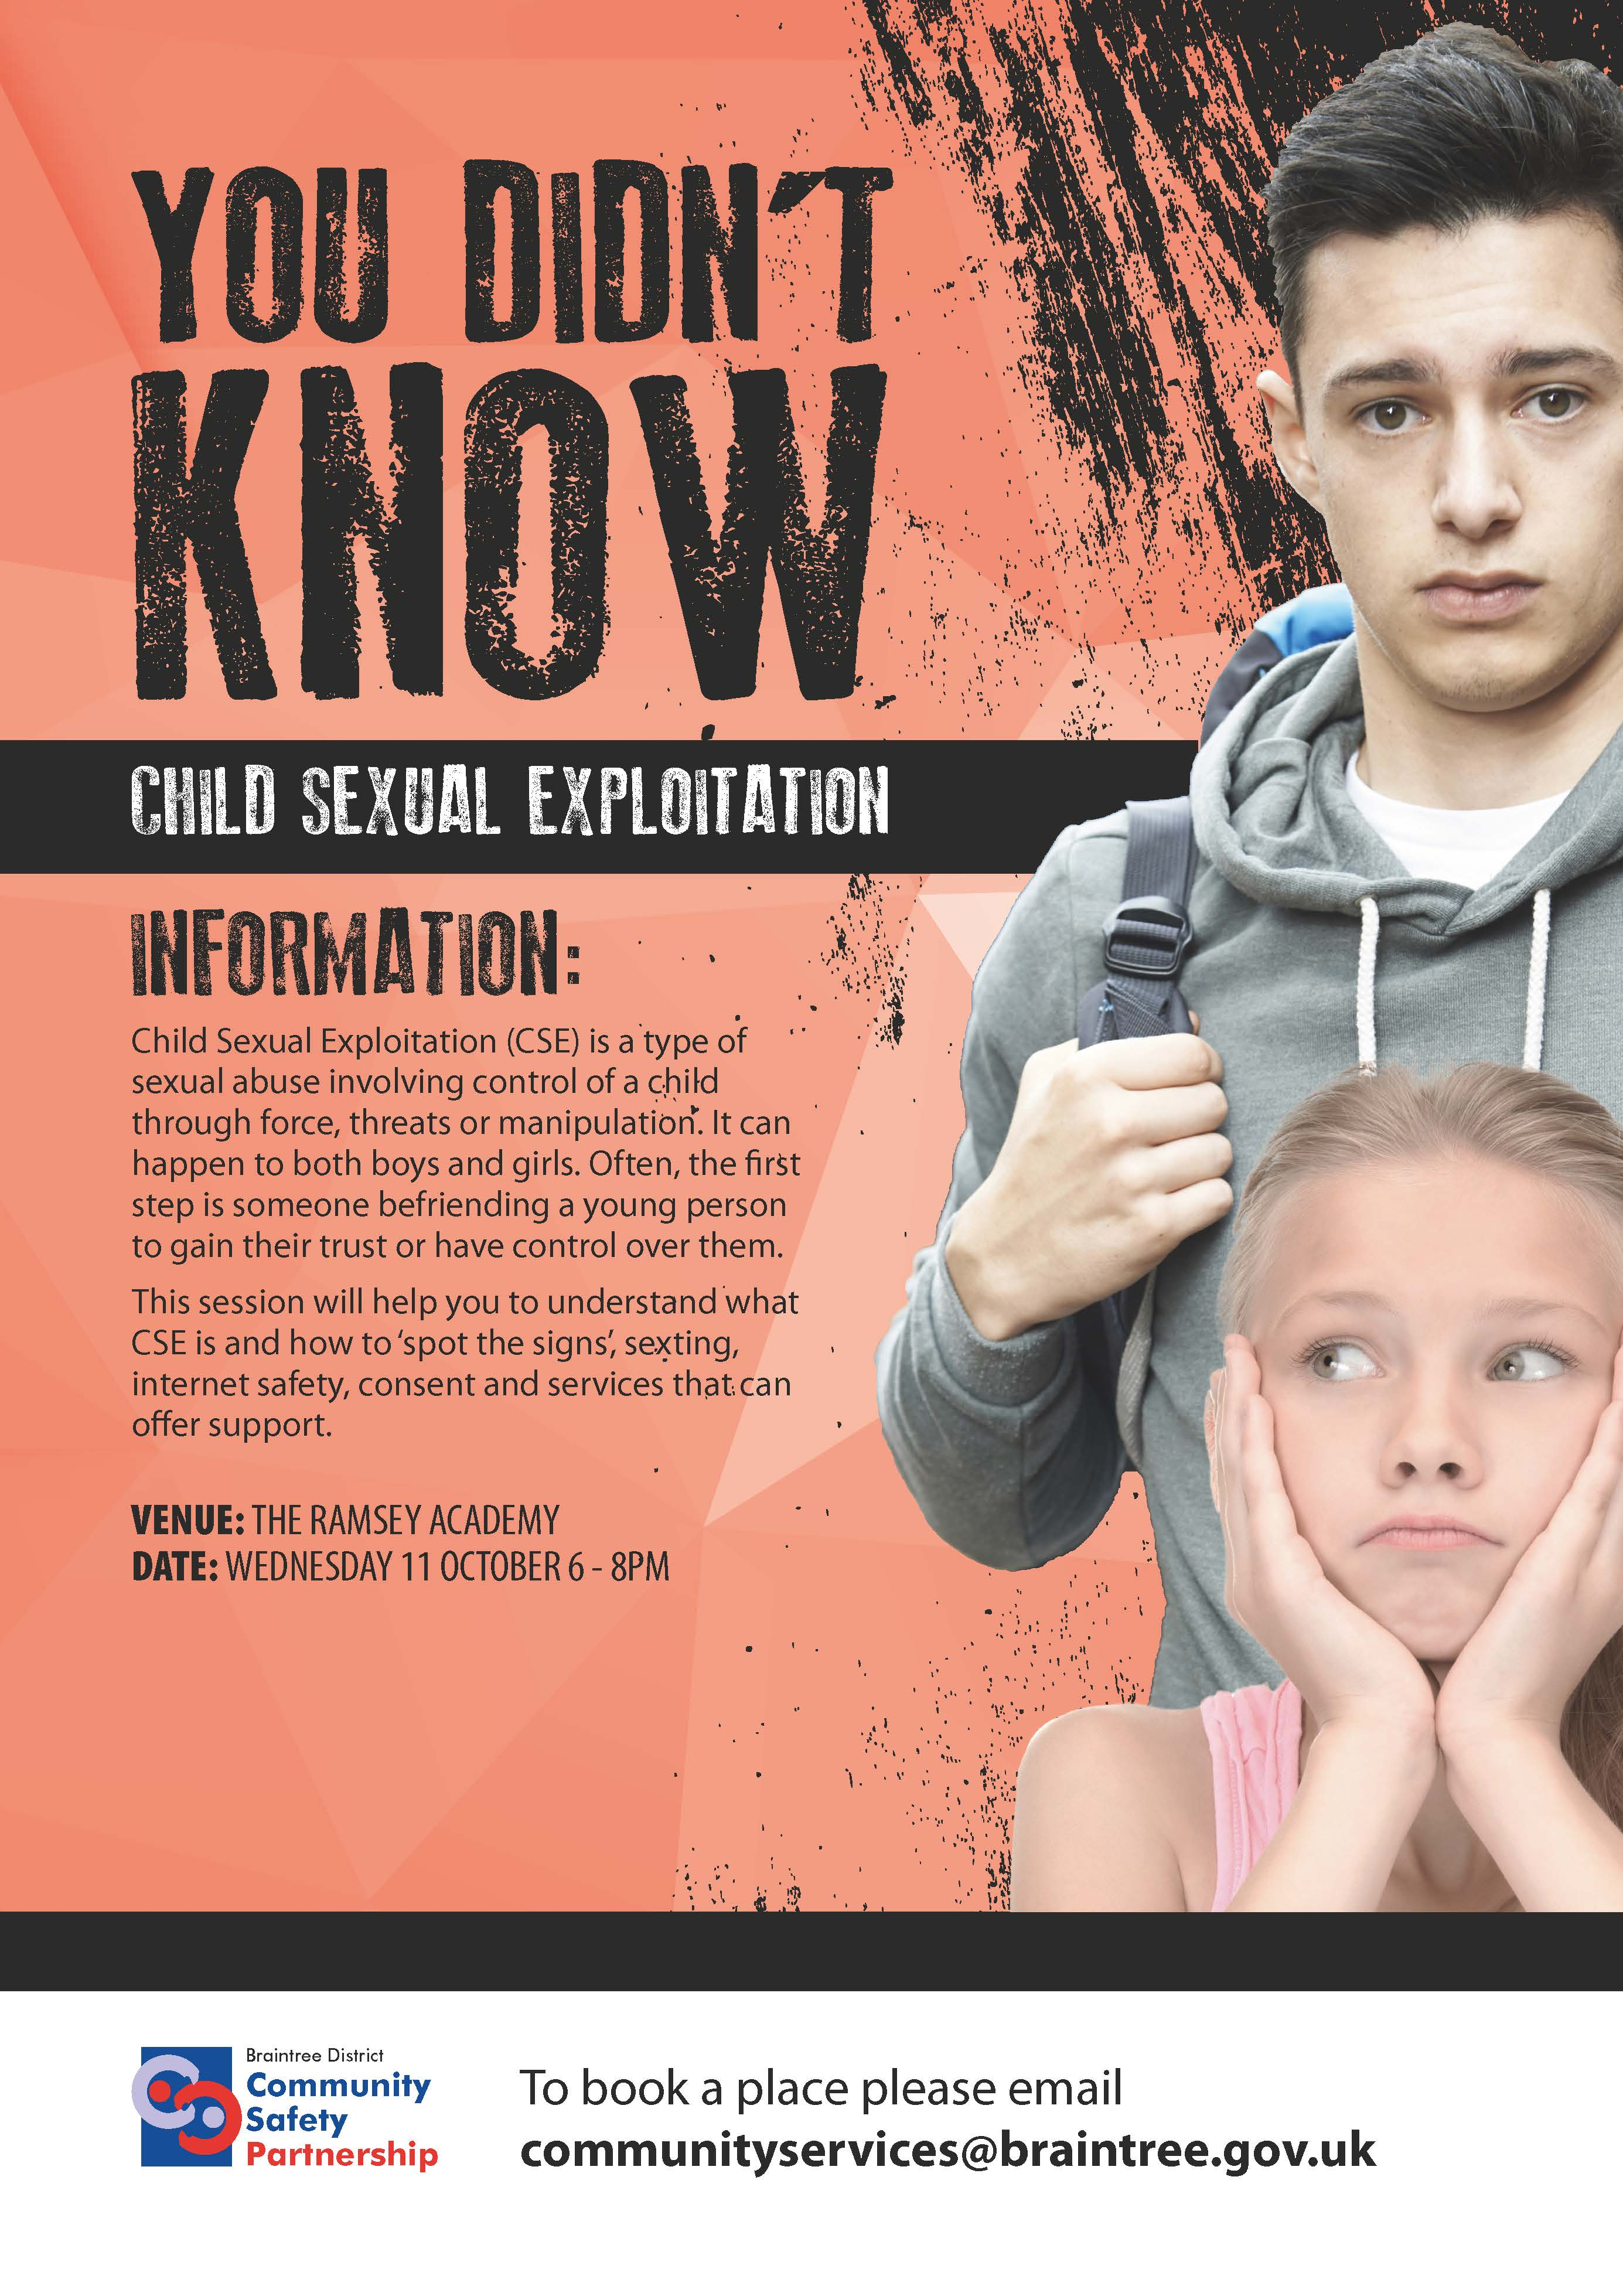 Child Sexual Exploitation Workshop Wednesday 11 October 6pm - 8pm.